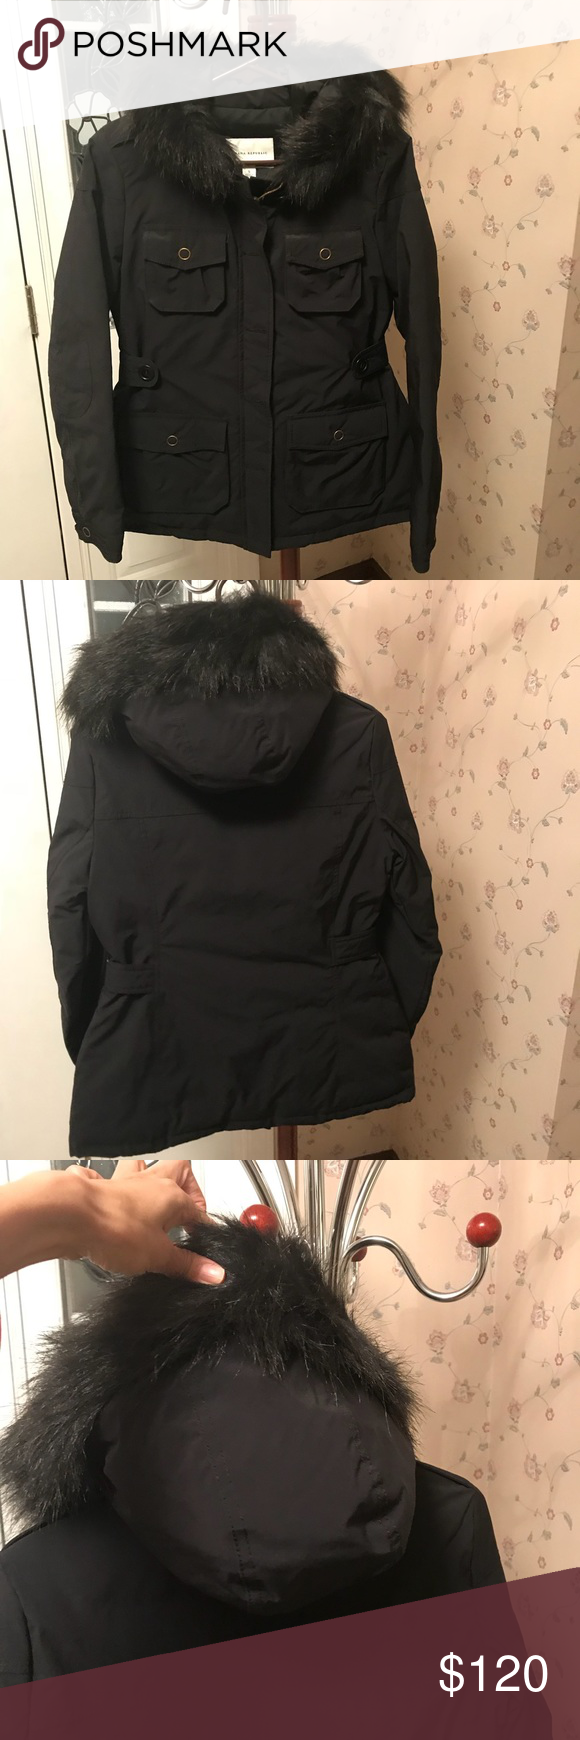 """Banana republic puffer coat hood faux fur down new New with tags puffer coat in black. Soft hood. Faux fur hood trim. Down and feather filled. Fully lined on a soft material. Side cinching waist with button cinch. Full zip and button option. Extra buttons on tag. Perfect new condition! Measures: length is 28"""" from shoulder to hem, sleeves are 24.5"""", armpit to armpit is 19"""", chest is up to 38"""", waist up to 36"""". Hip is 44"""". Shoulder to shoulder is 16"""". Never worn! Banana Republic Jackets…"""